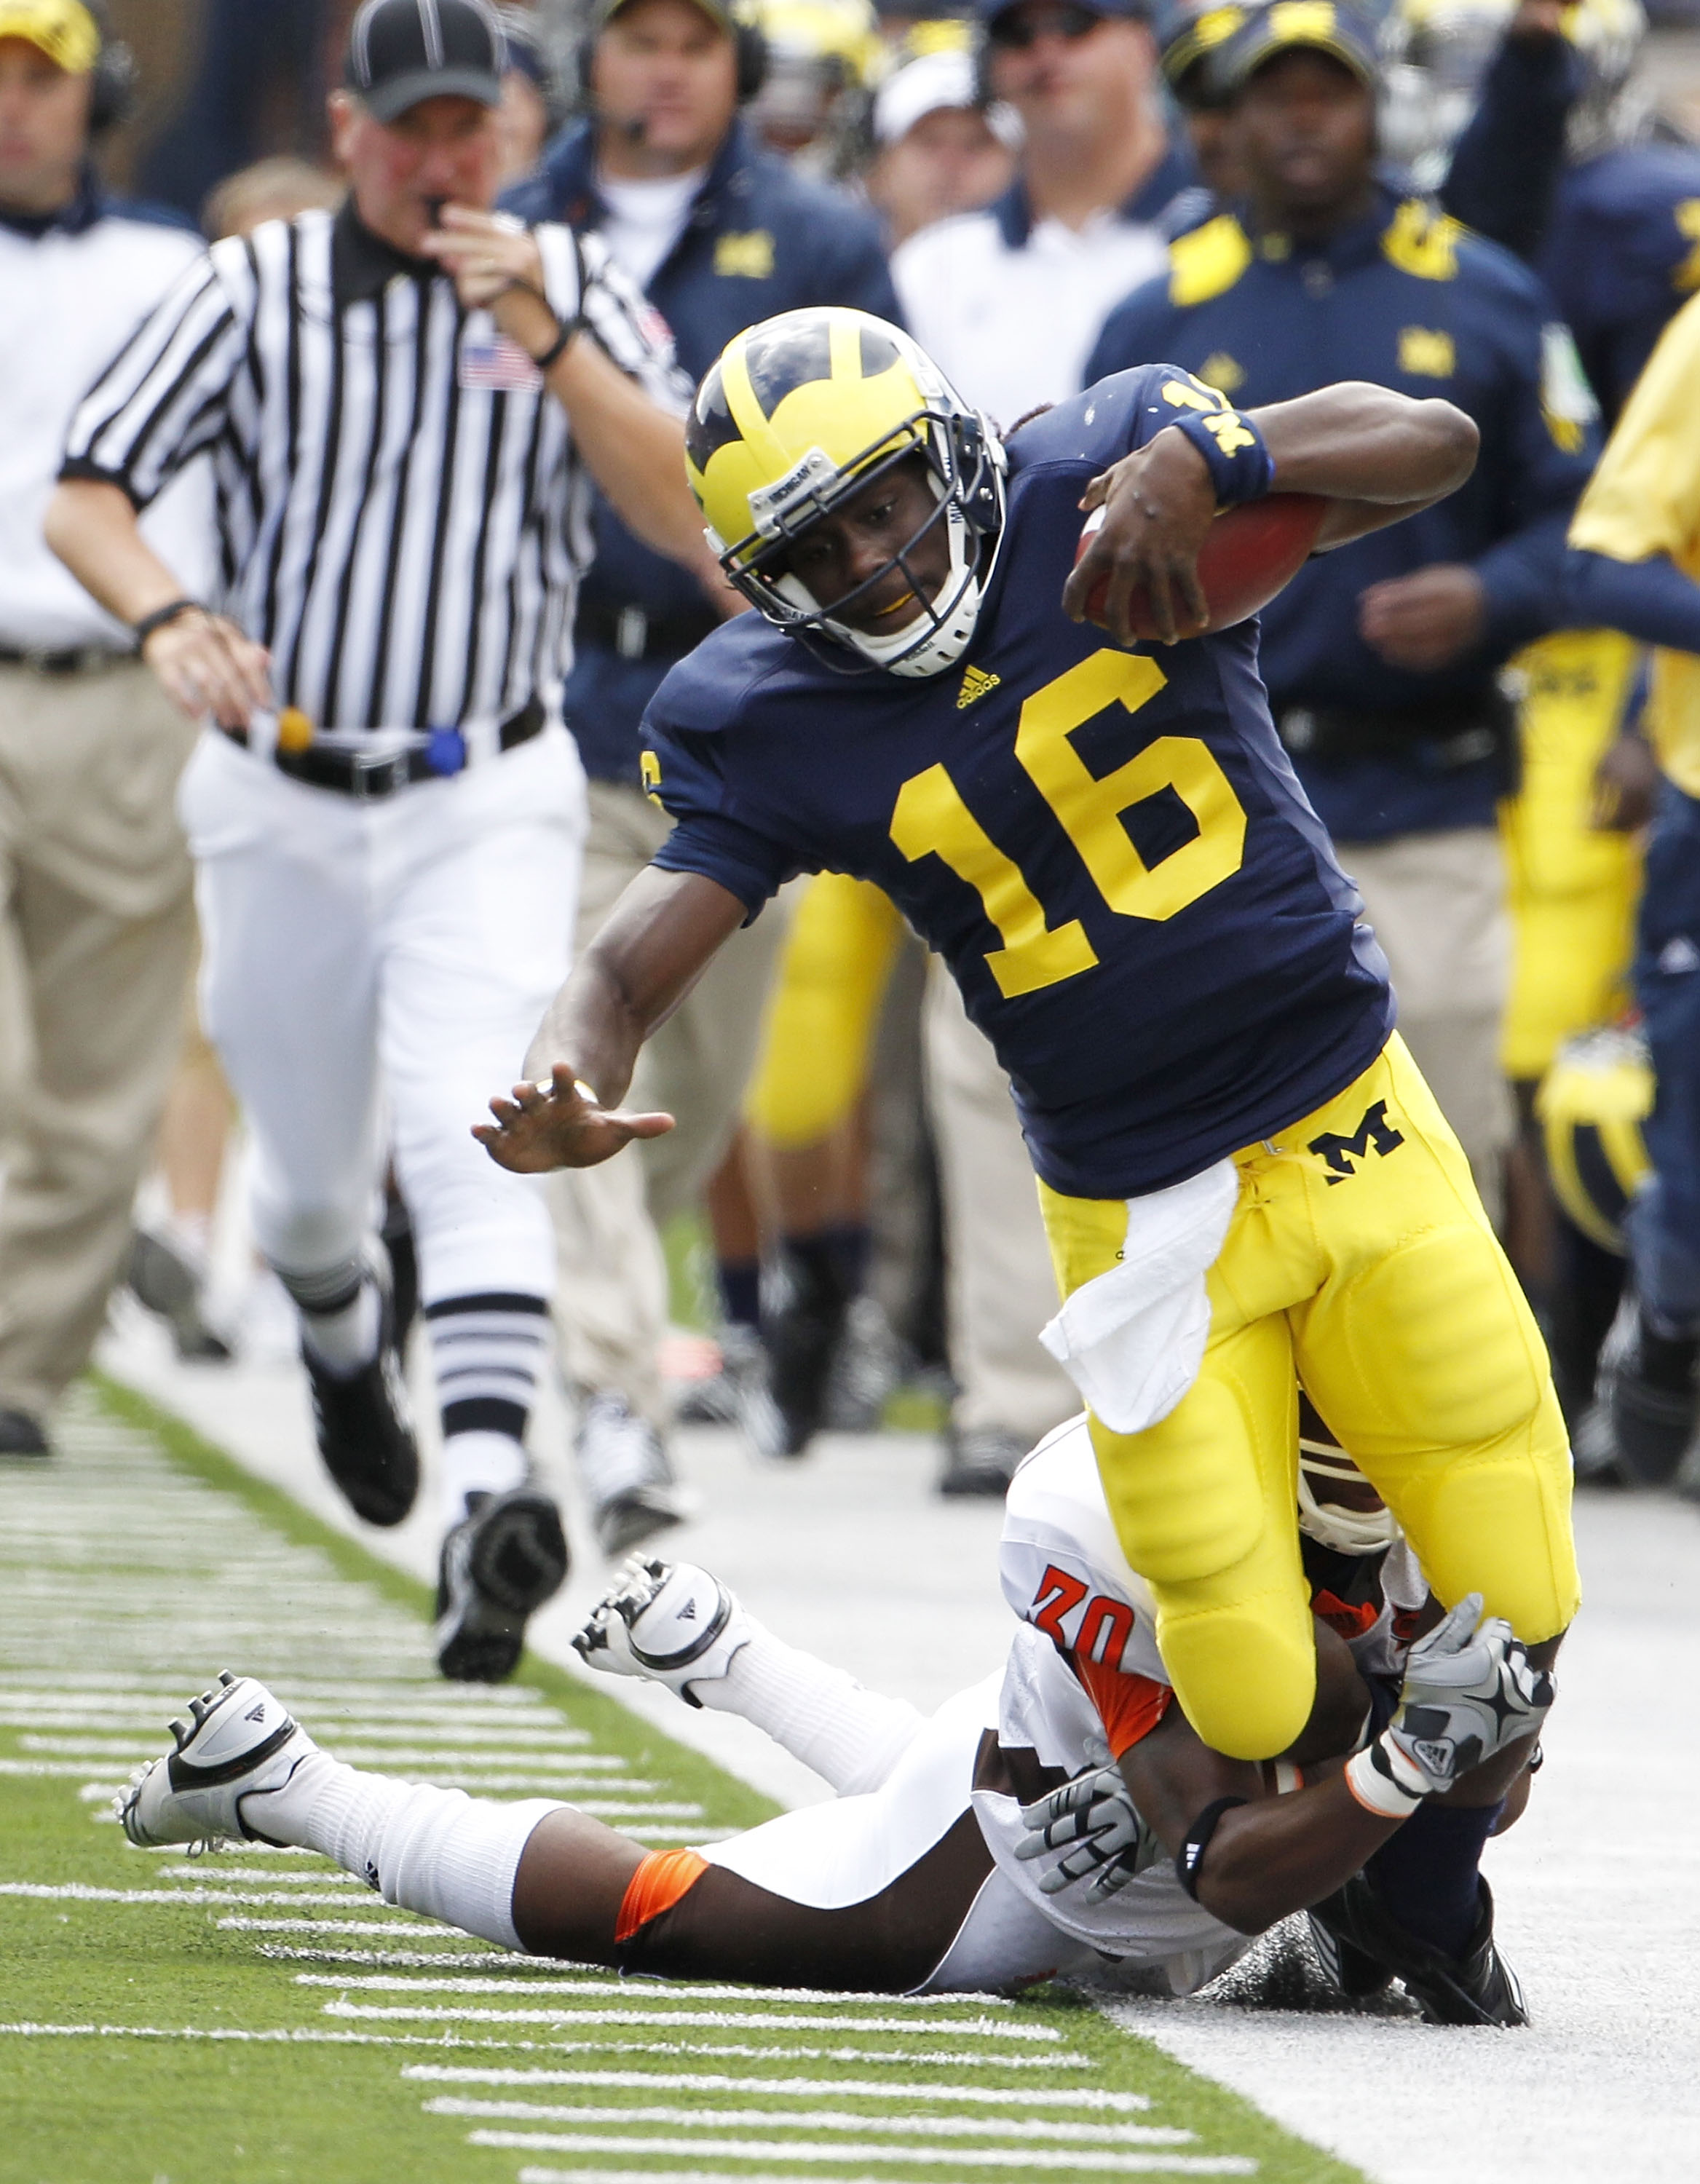 ANN ARBOR, MI - SEPTEMBER 25:  Cameron Truss #30 of Bowling Green tackles Denard Robison #16 of the Michigan Wolverines on September 25, 2010 at Michigan Stadium in Ann Arbor, Michigan. Robison left the game after this play with a reported leg injury.  (P